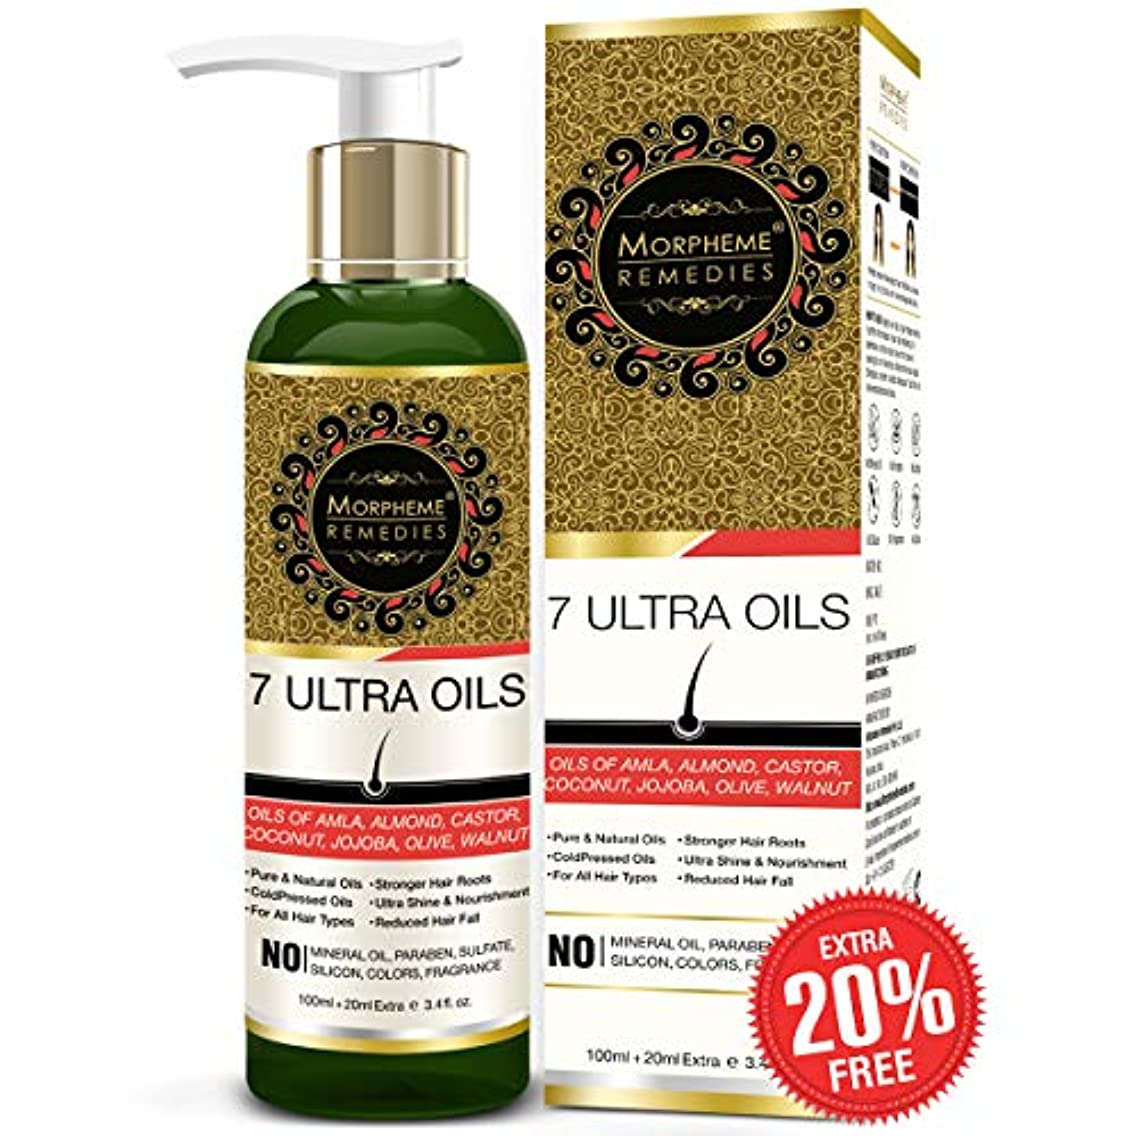 筋ベルトスポンジMorpheme Remedies 7 Ultra Hair Oil - (Almond, Castor, Jojoba, Coconut, Olive, Walnut, Amla Oils) - 120 ml